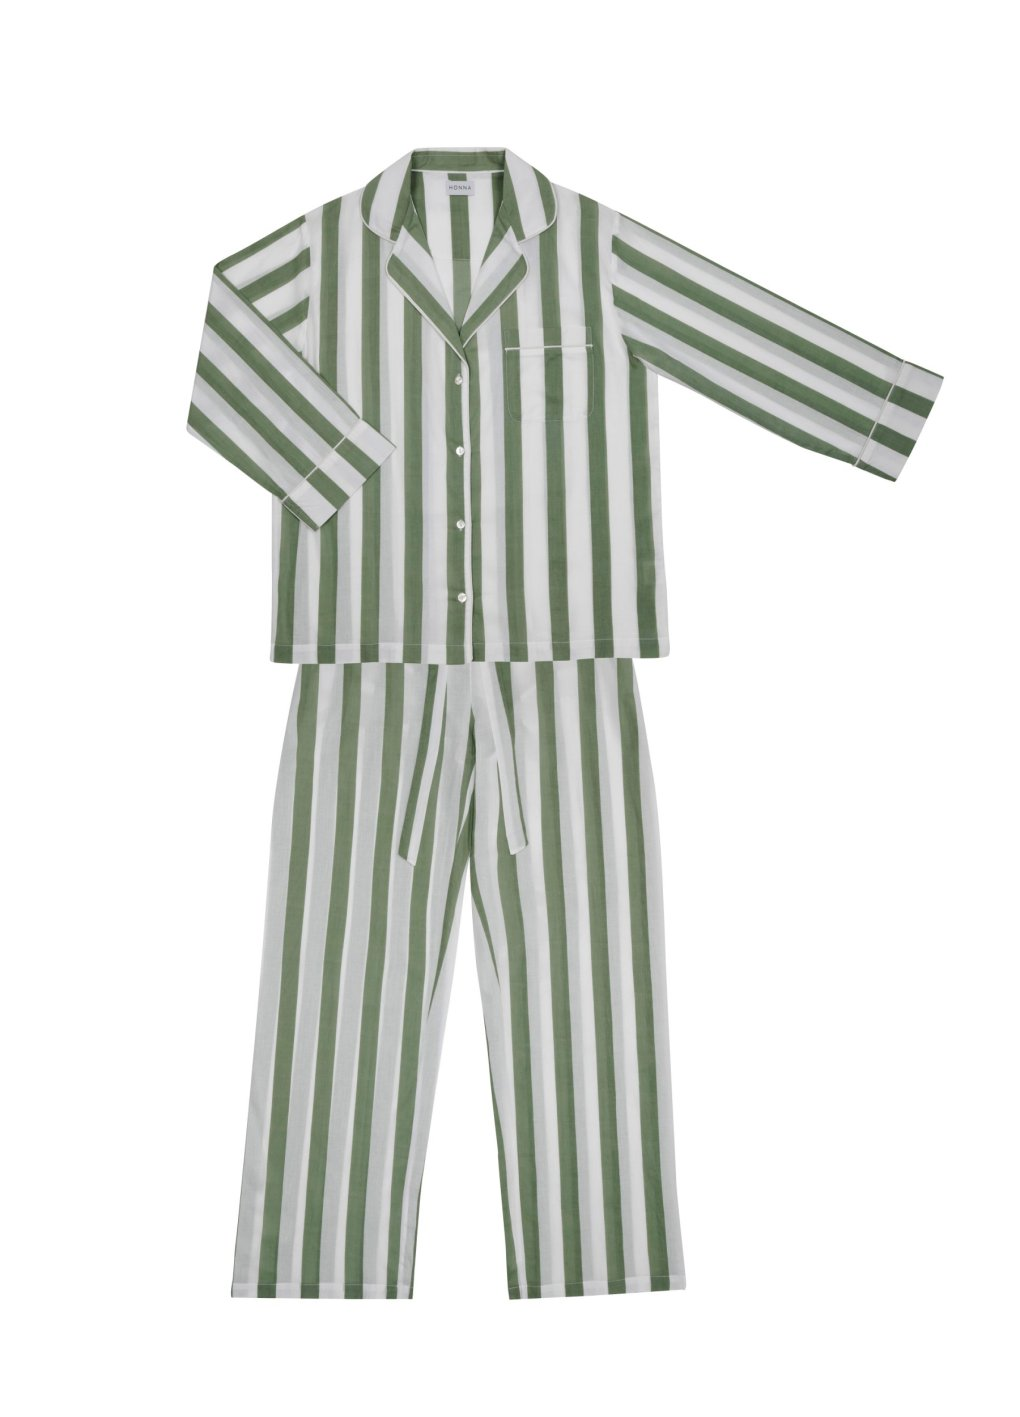 Sage green stripes, soft cotton and mother of pearl buttons all feature on Honna London?s sumptuously oversized new PJs which I can testify really can be worn on a Zoom call with no-one batting an eyelid. ?120, honnalondon.com https://www.honnalondon.com/collections/frontpage/products/sage-stripe-pyjama-set